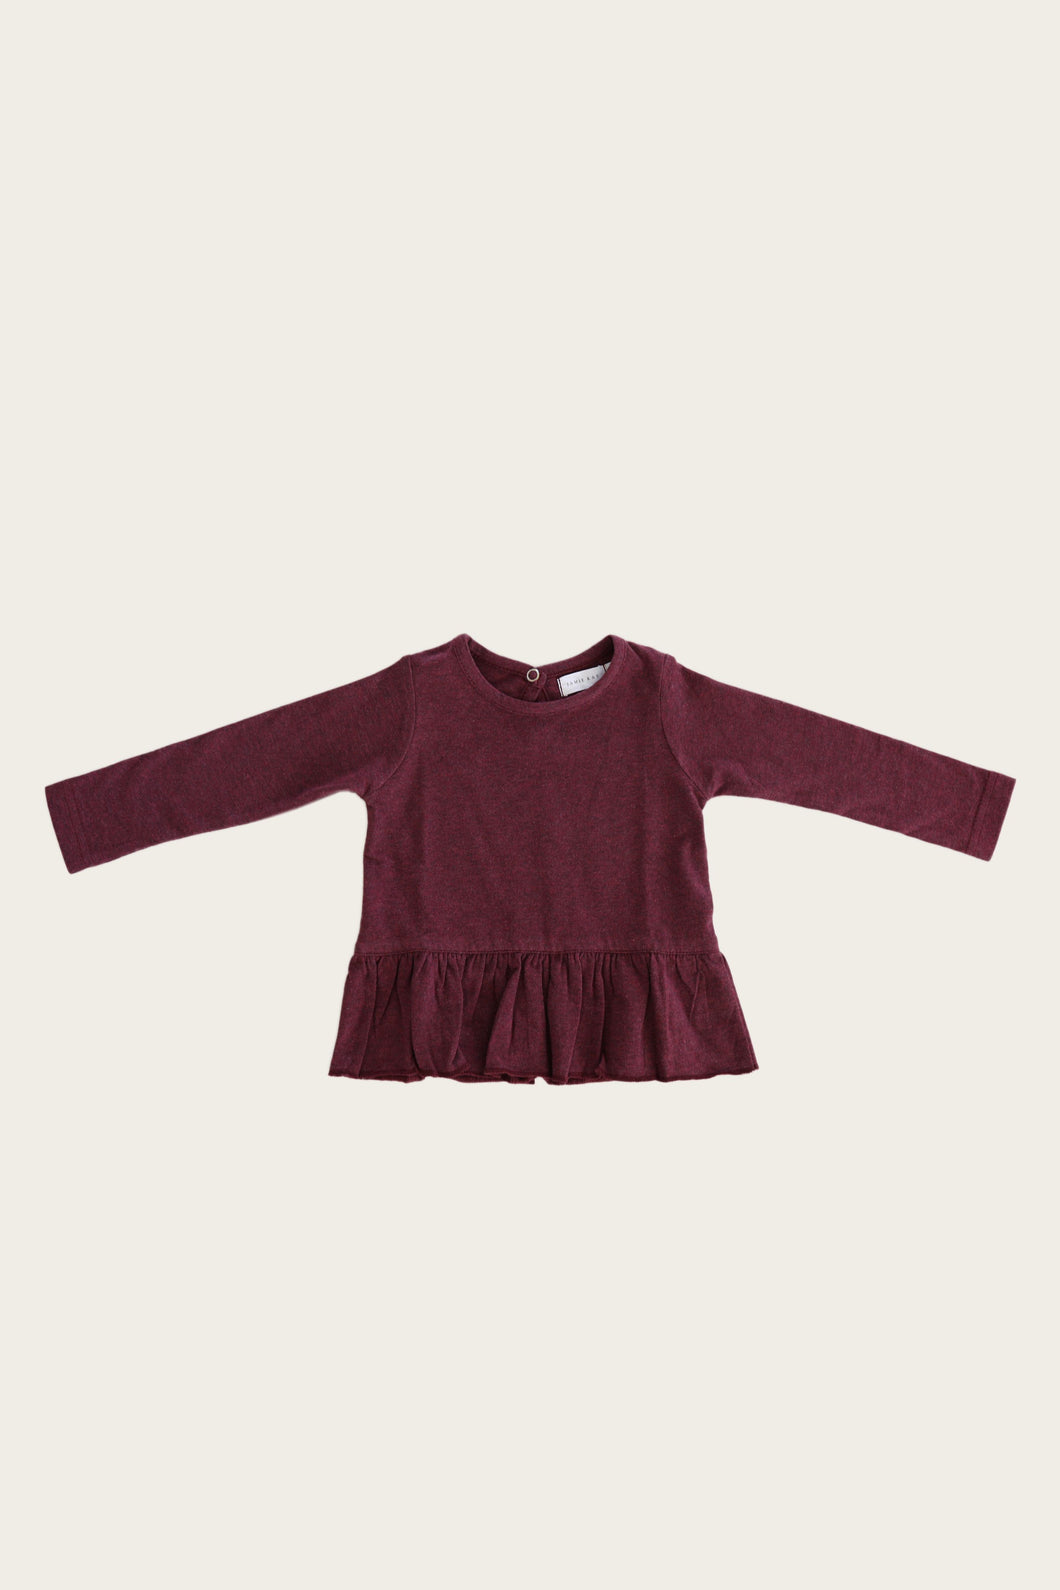 Bailey Top - Plum